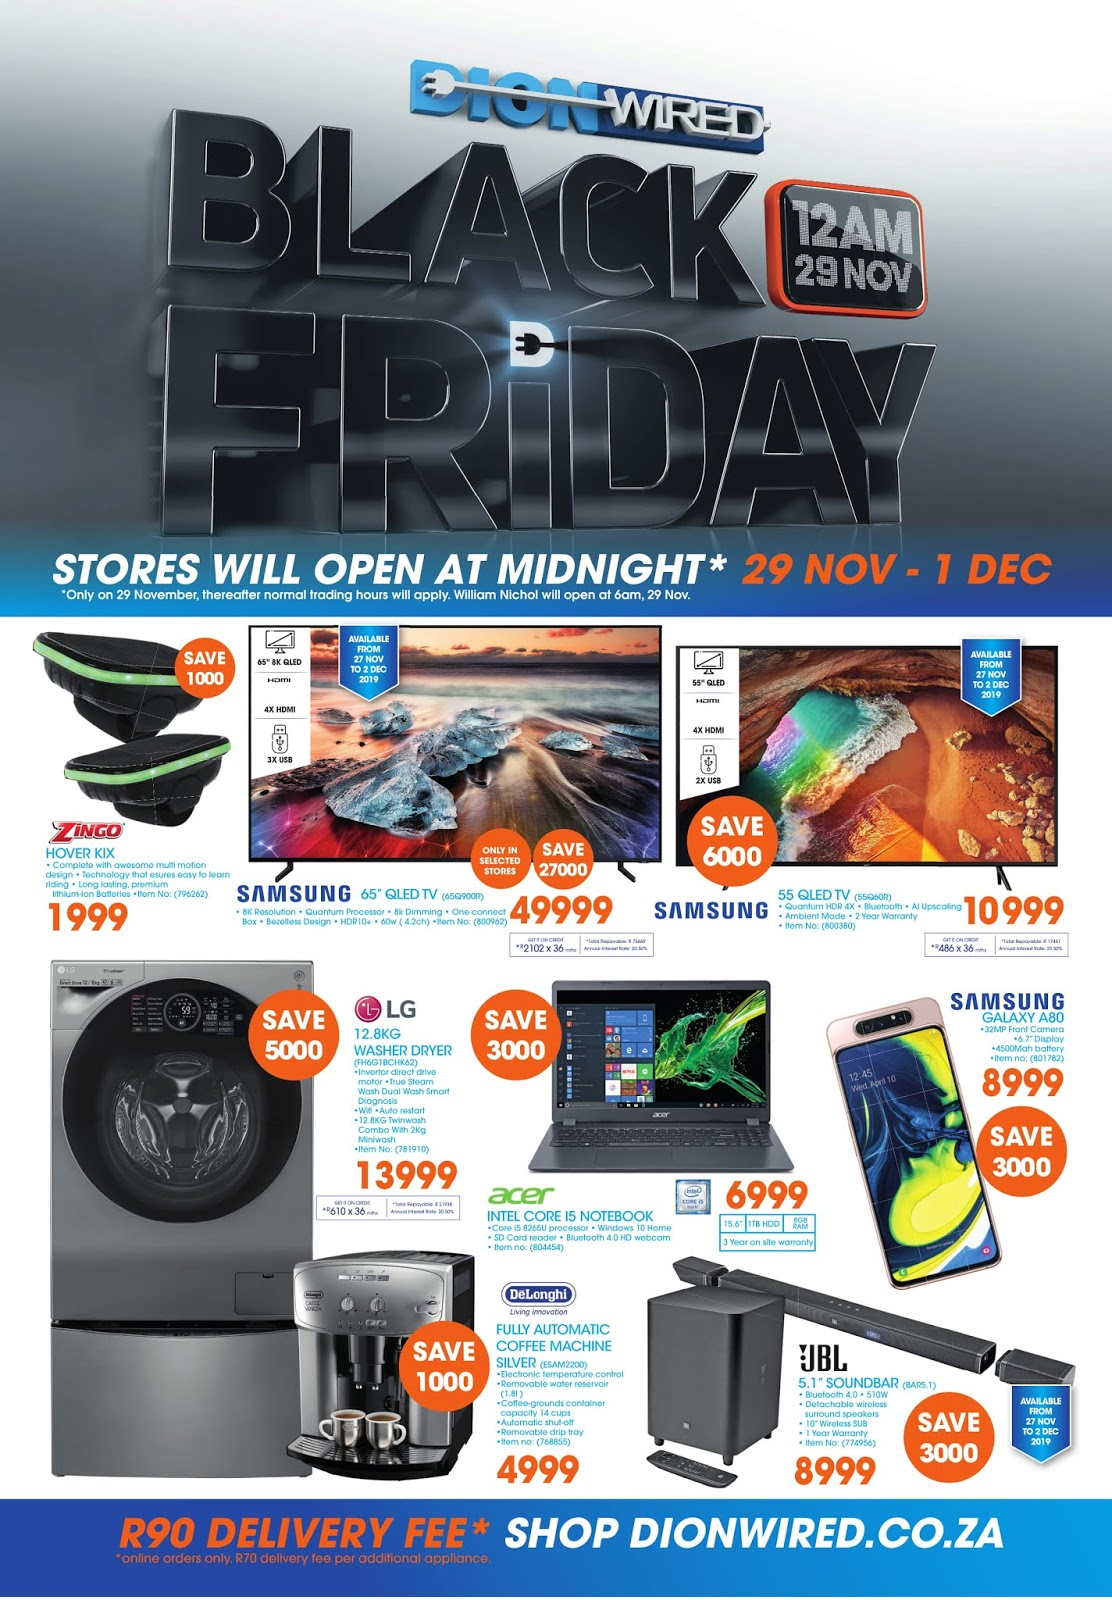 Dion Wired Black Friday Deals Page 1